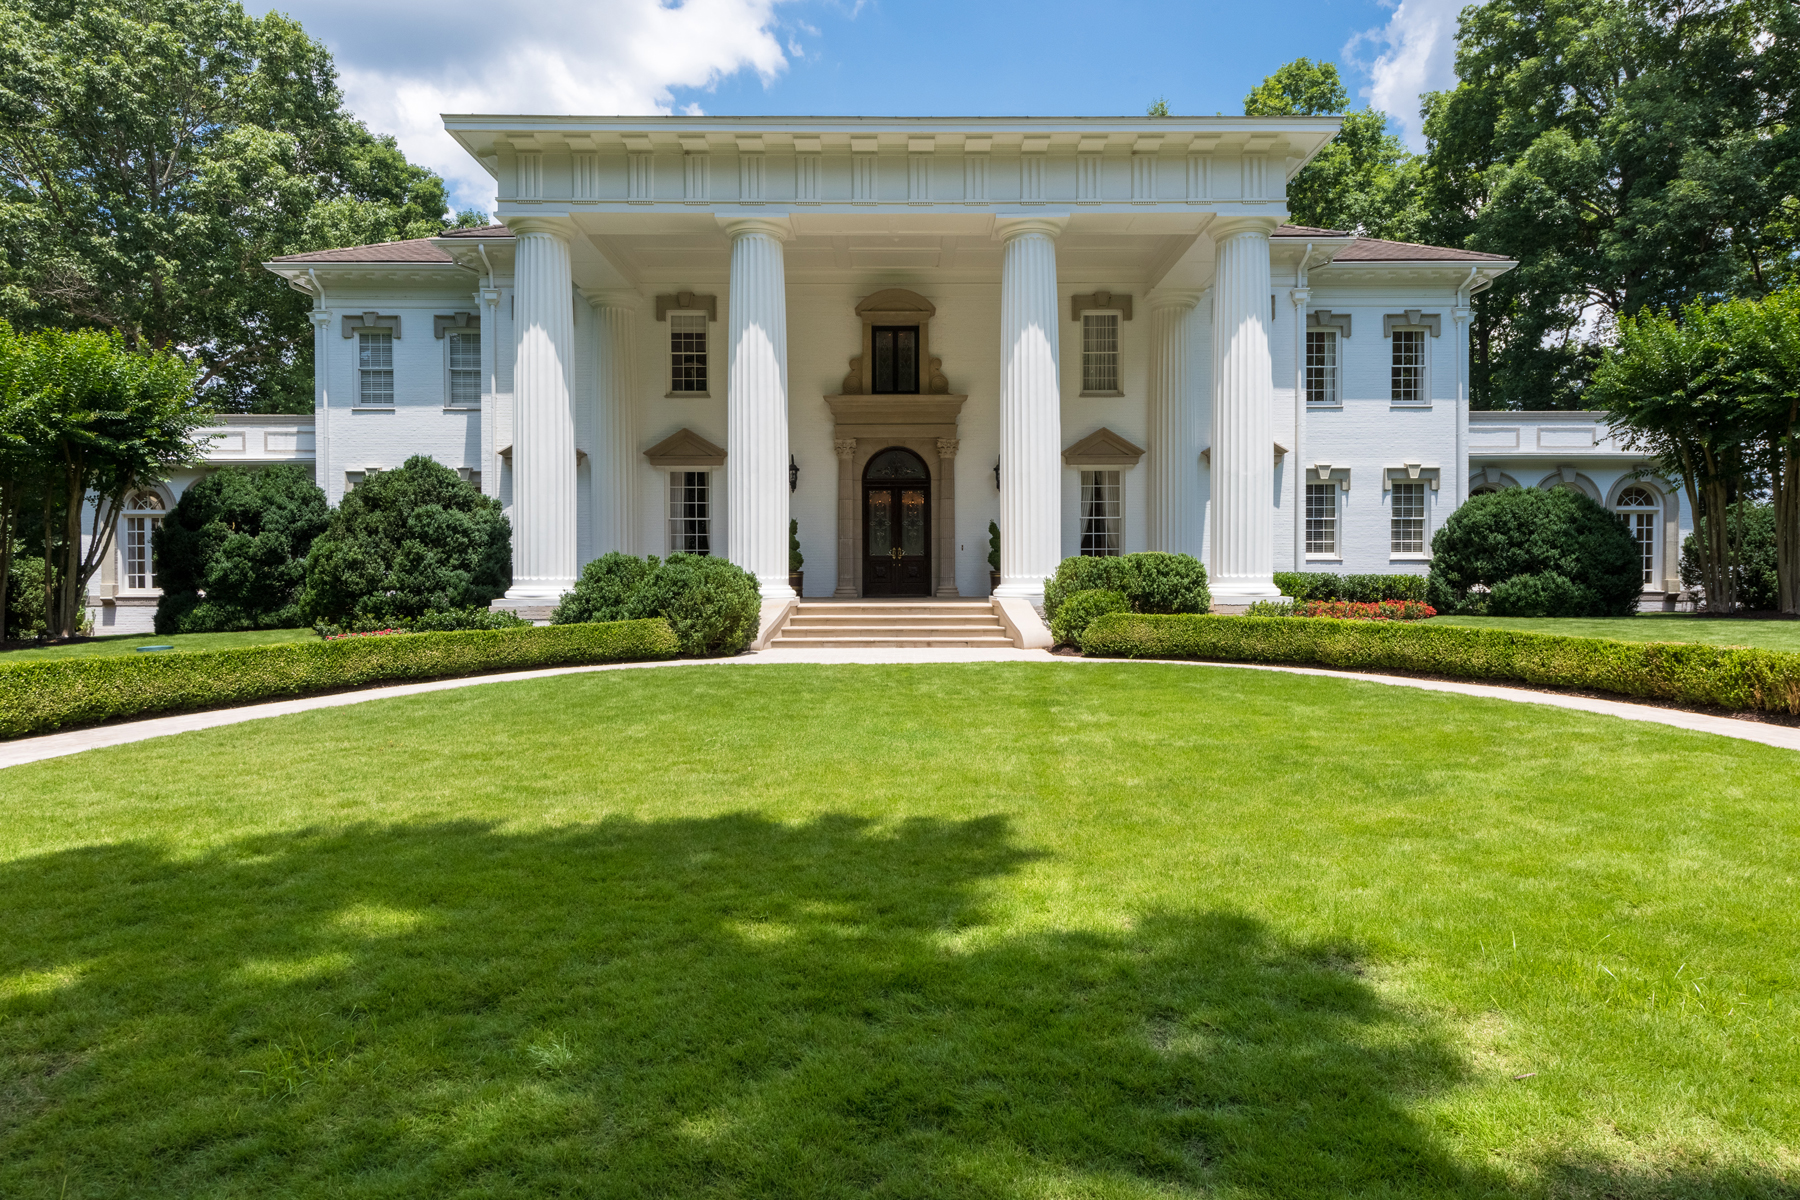 Single Family Home for Sale at Situated On The Chattahoochee On 14+/- Private Acres 60 Sherington Place Atlanta, Georgia 30350 United States